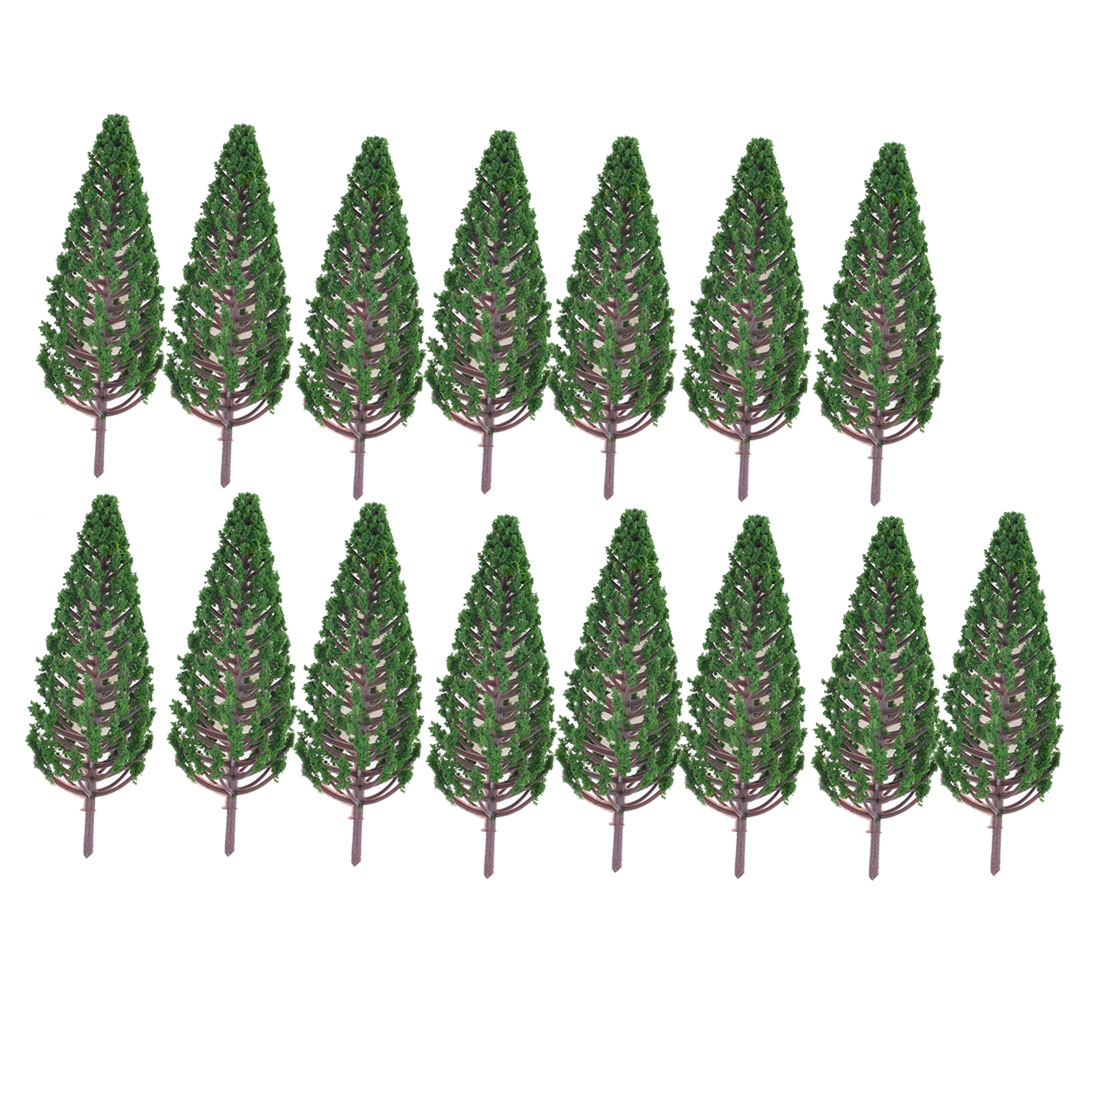 15 Pcs Dark Green Plastic Pagoda Model Trees 10.5cm High Layout Scene 1:100